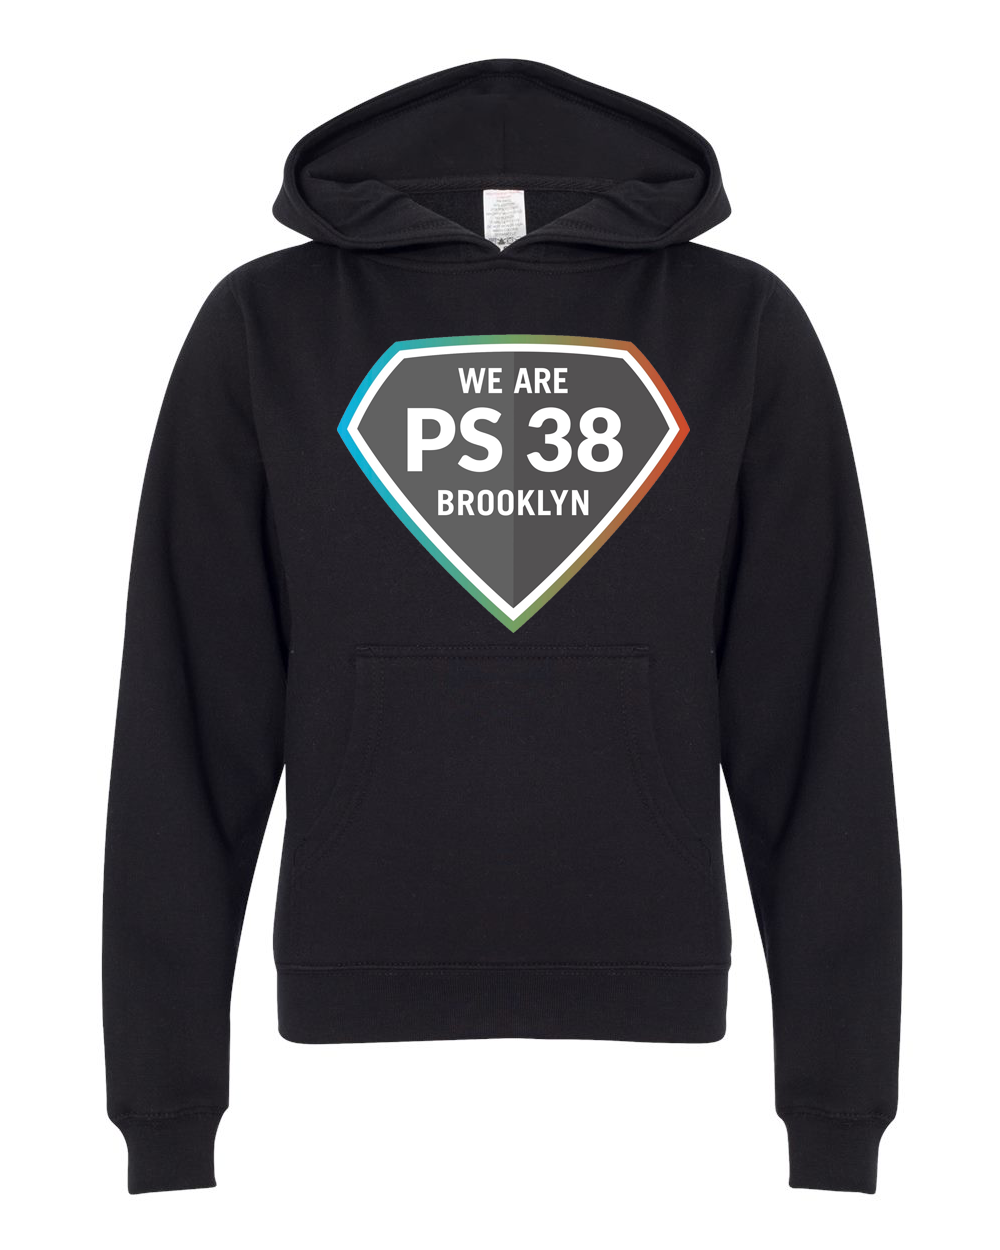 P.S. 38 : Youth Pullover Hoodie